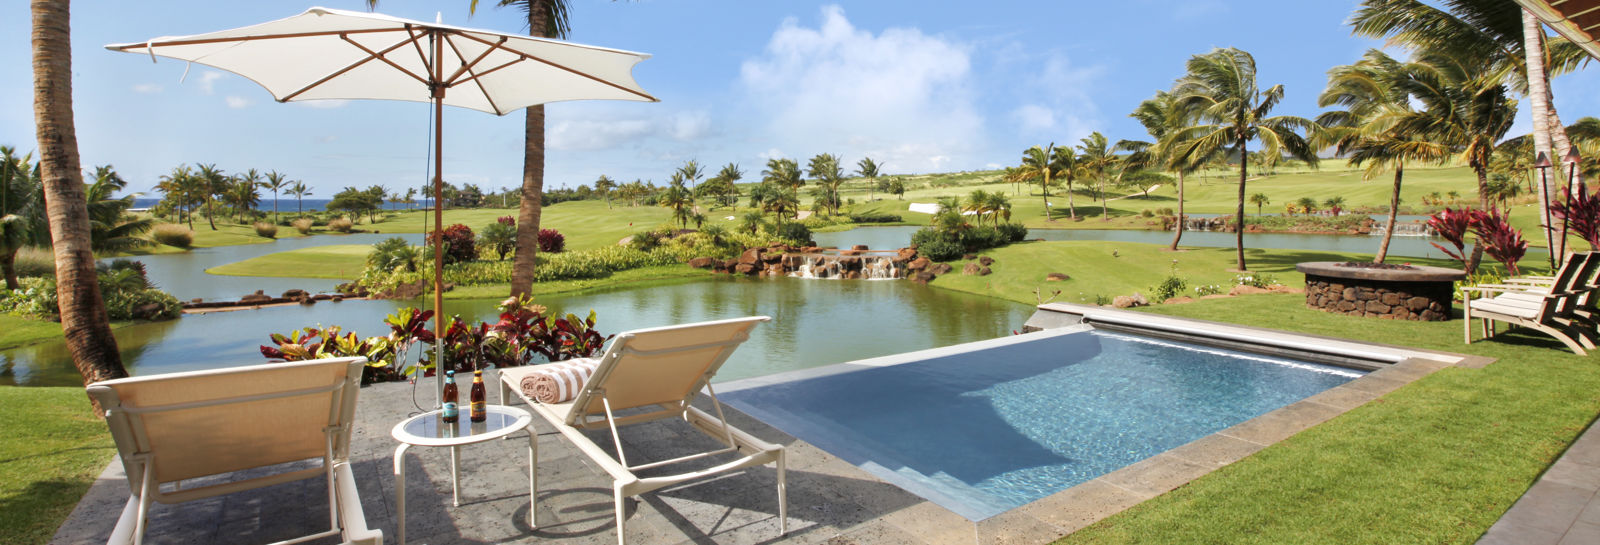 Luxurious tropical pool setting off lanai with two lounge chairs and umbrella. View over golf course lakes and fairway to ocean.